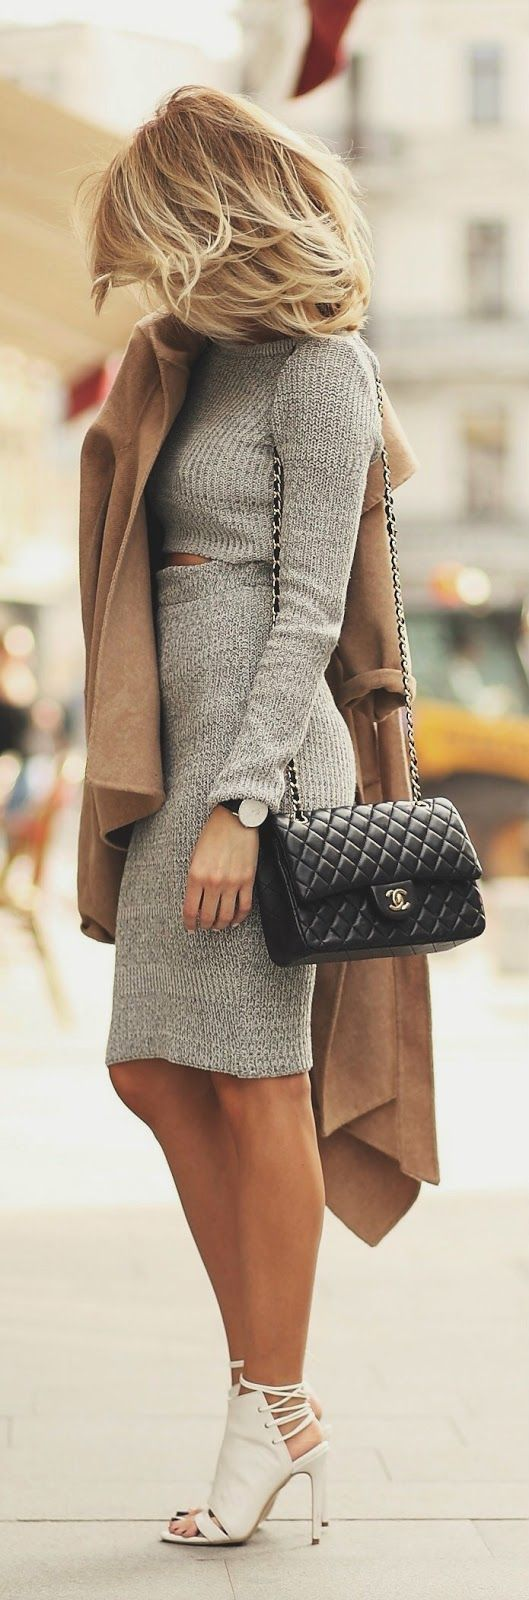 best inverno images on pinterest woman fashion jackets and